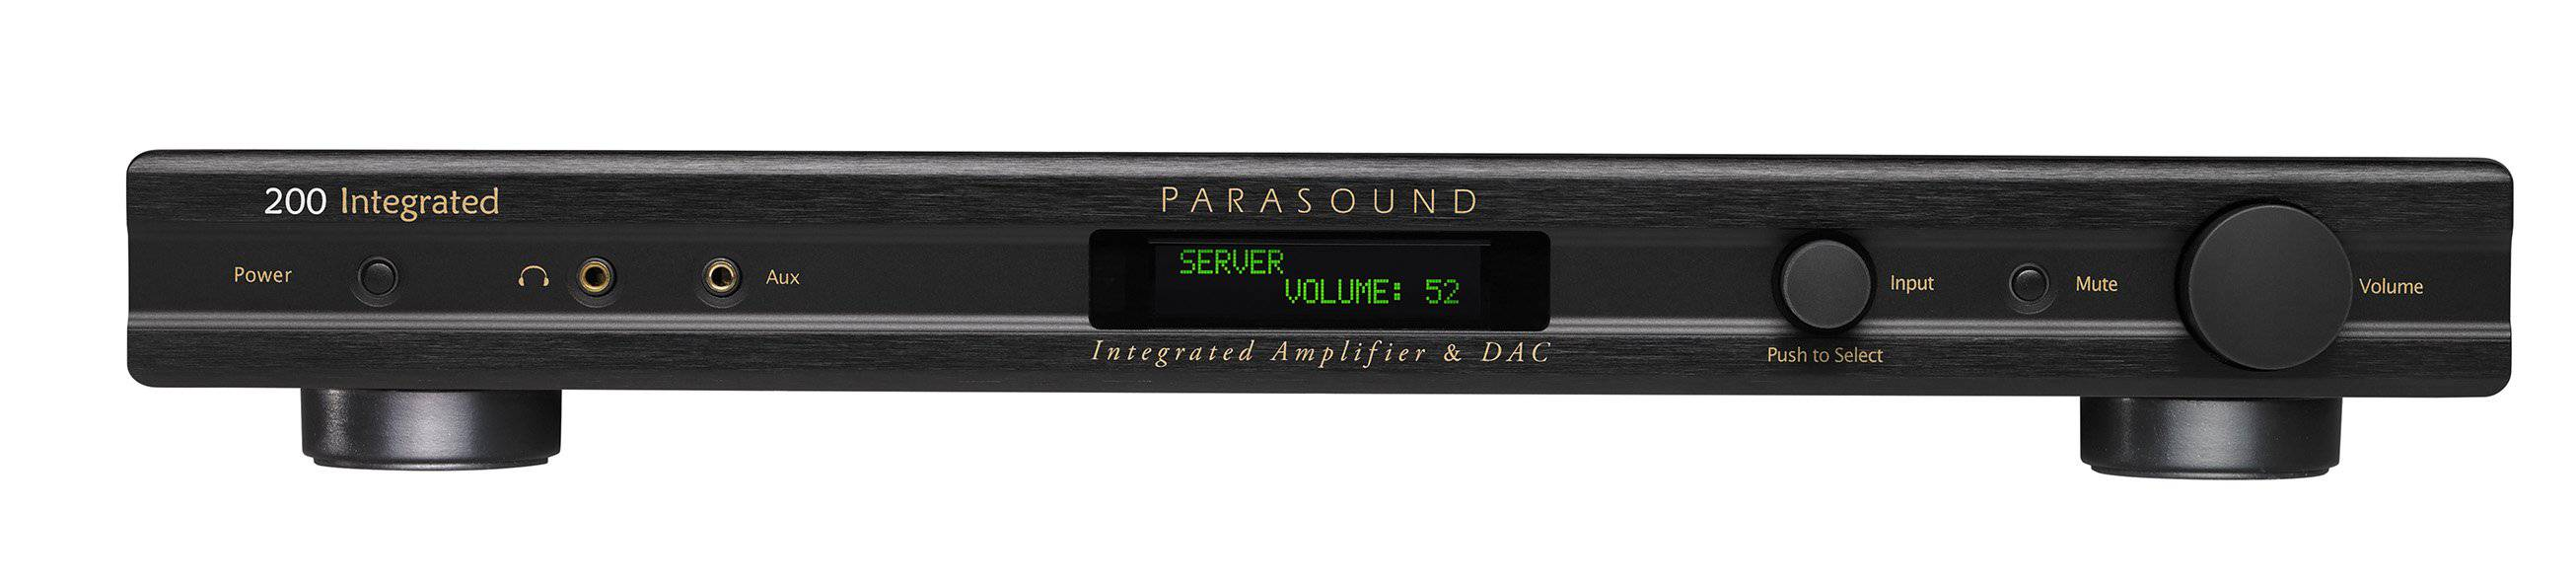 Parasound NewClassic 200 - Integrated Amplifier - The Audio Company